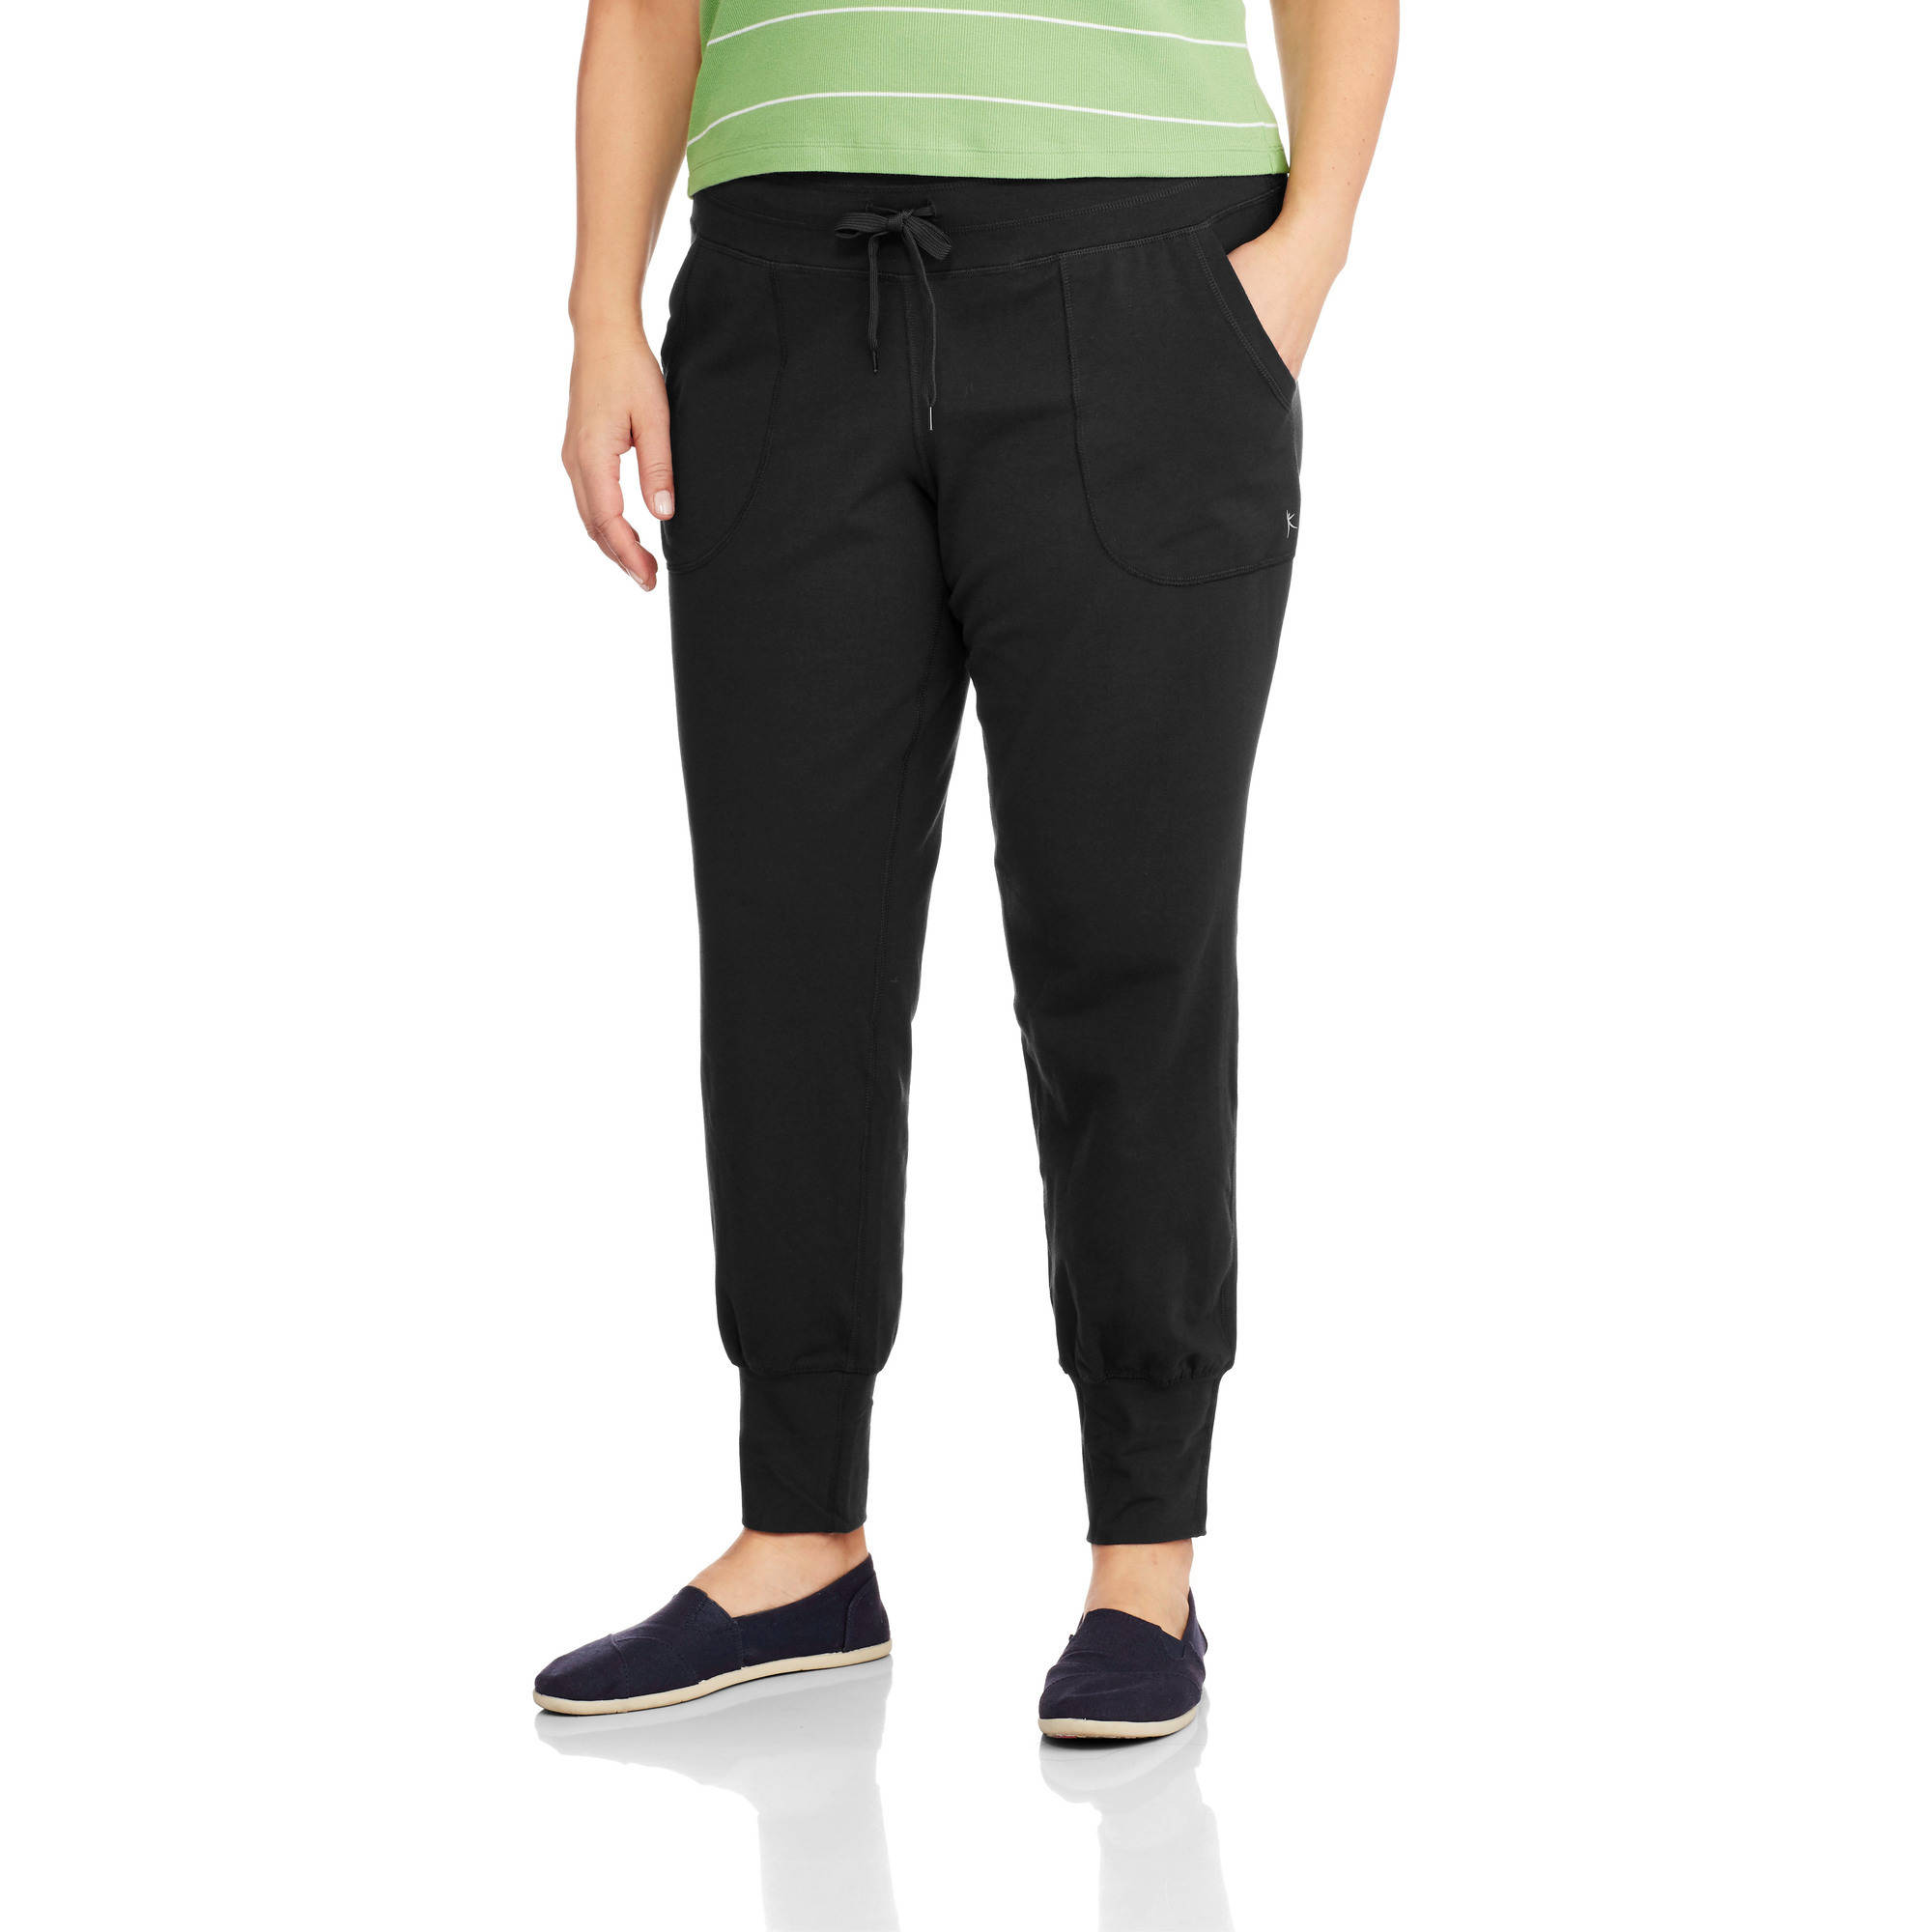 danskin now women's plus size jogger pant - walmart